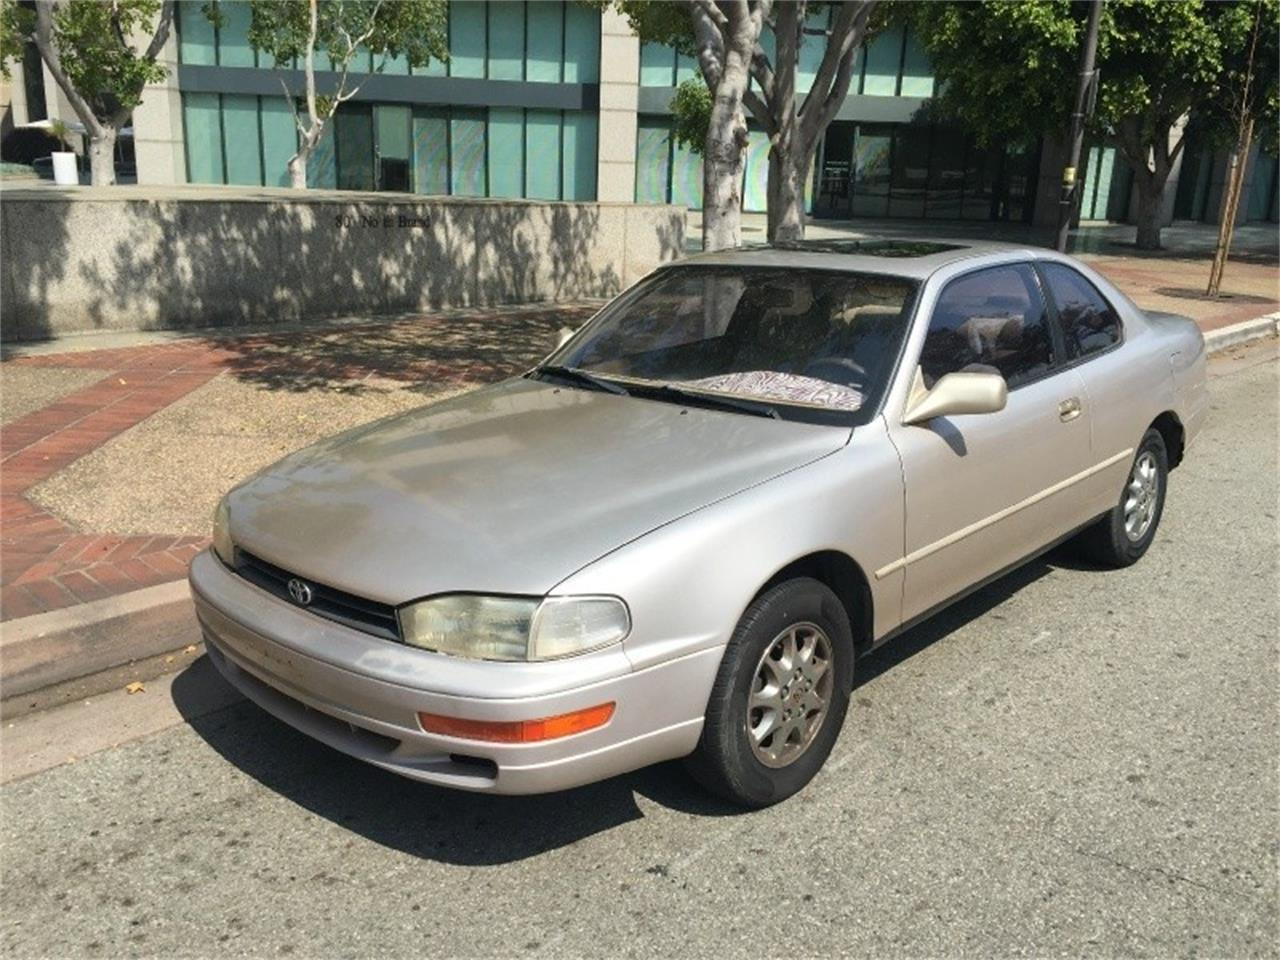 Toyota Dealers Phoenix >> 1994 Toyota Camry for Sale | ClassicCars.com | CC-1022199